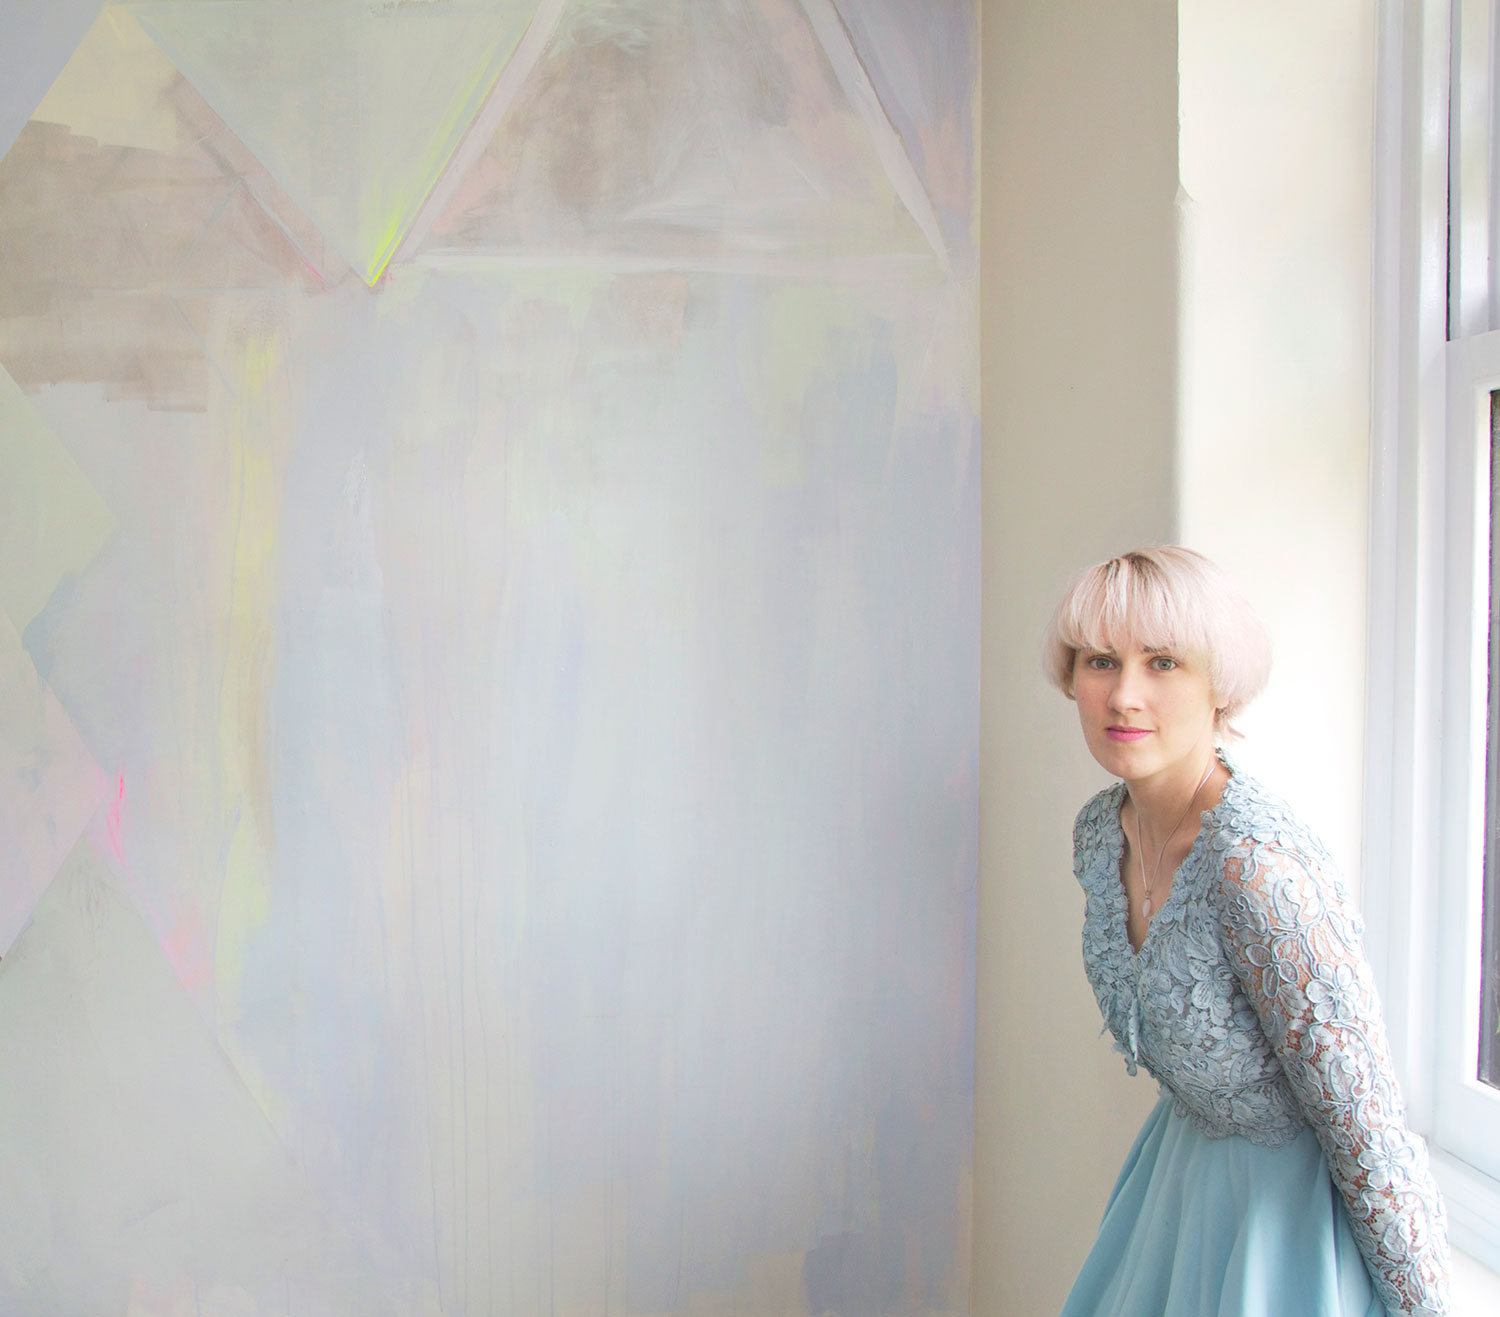 Diamond abstract pastel mural with metallic paint and neon yellow highlights, model has short white blonde hair and stares thoughtfully while wearing pastel blue lace vintage dress.